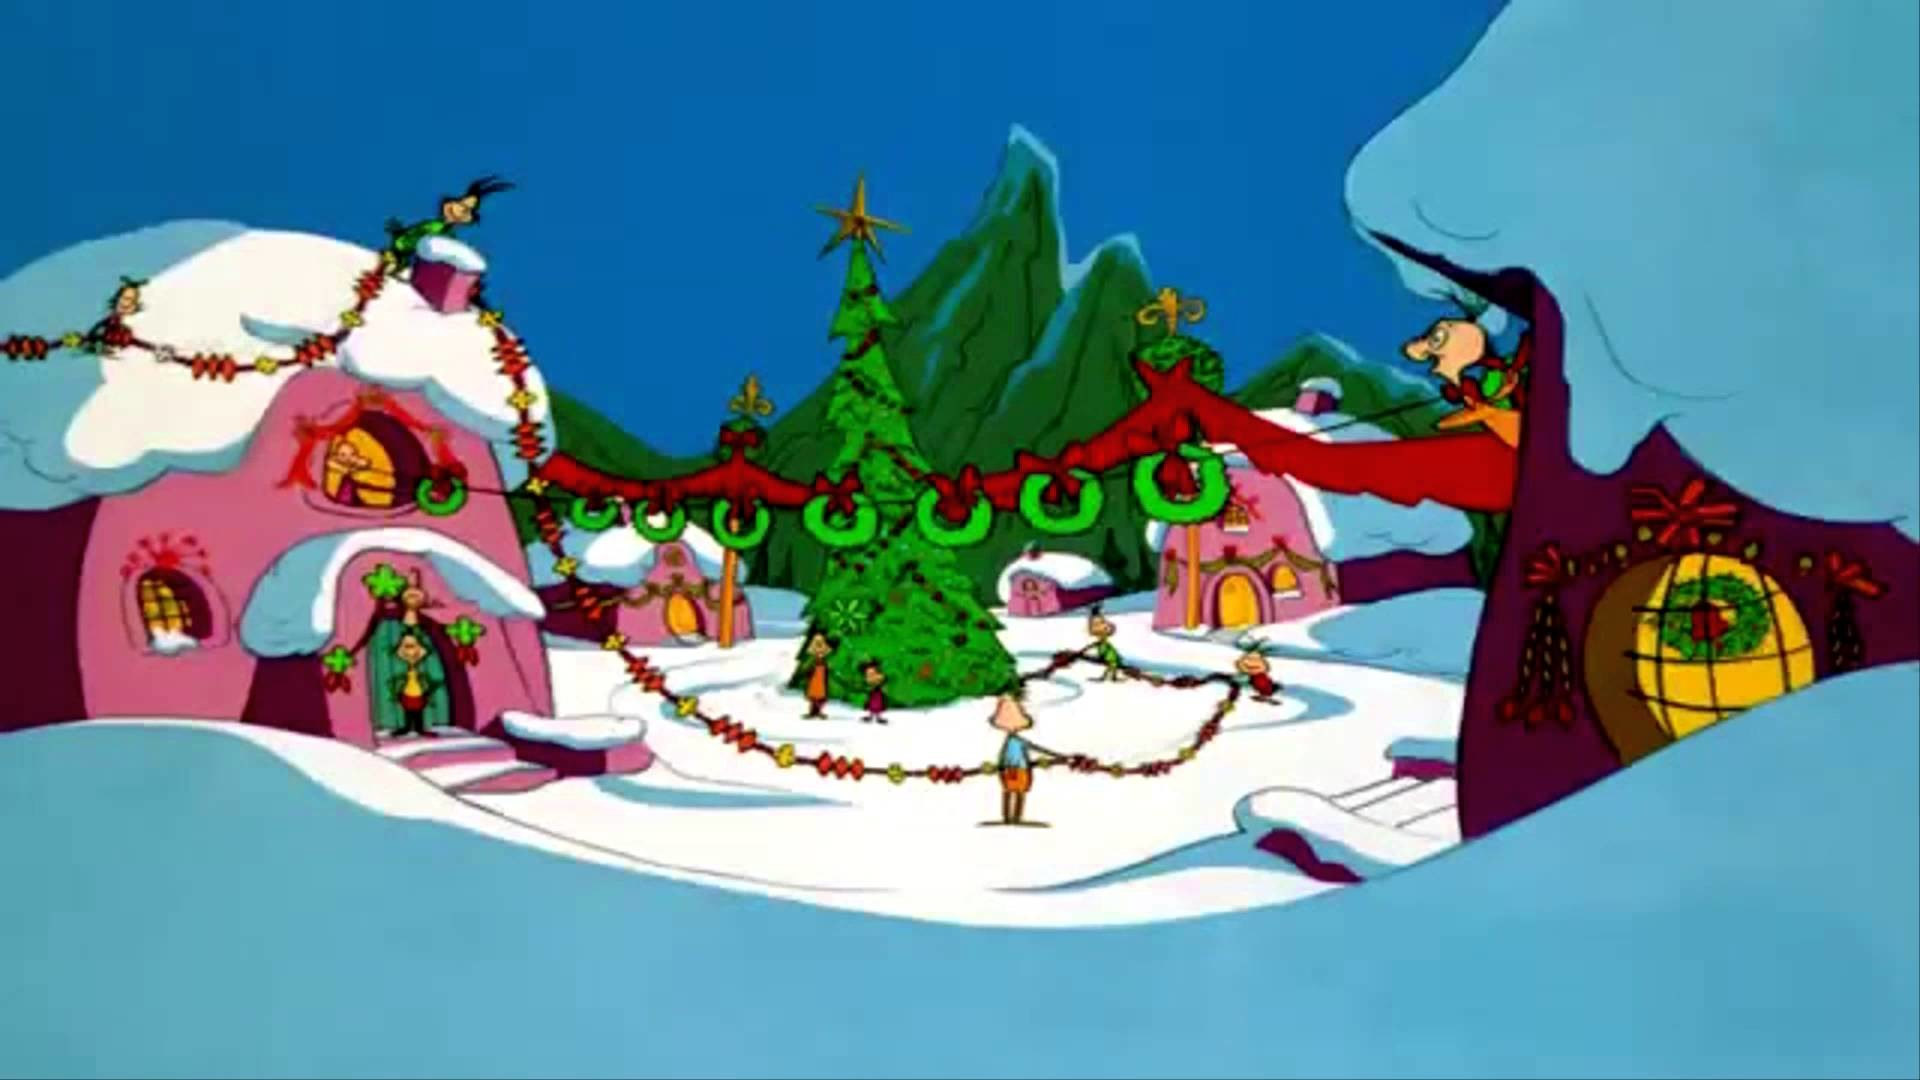 1920x1080 how the grinch stole christmas image - How The Grinch Stole Christmas Stream